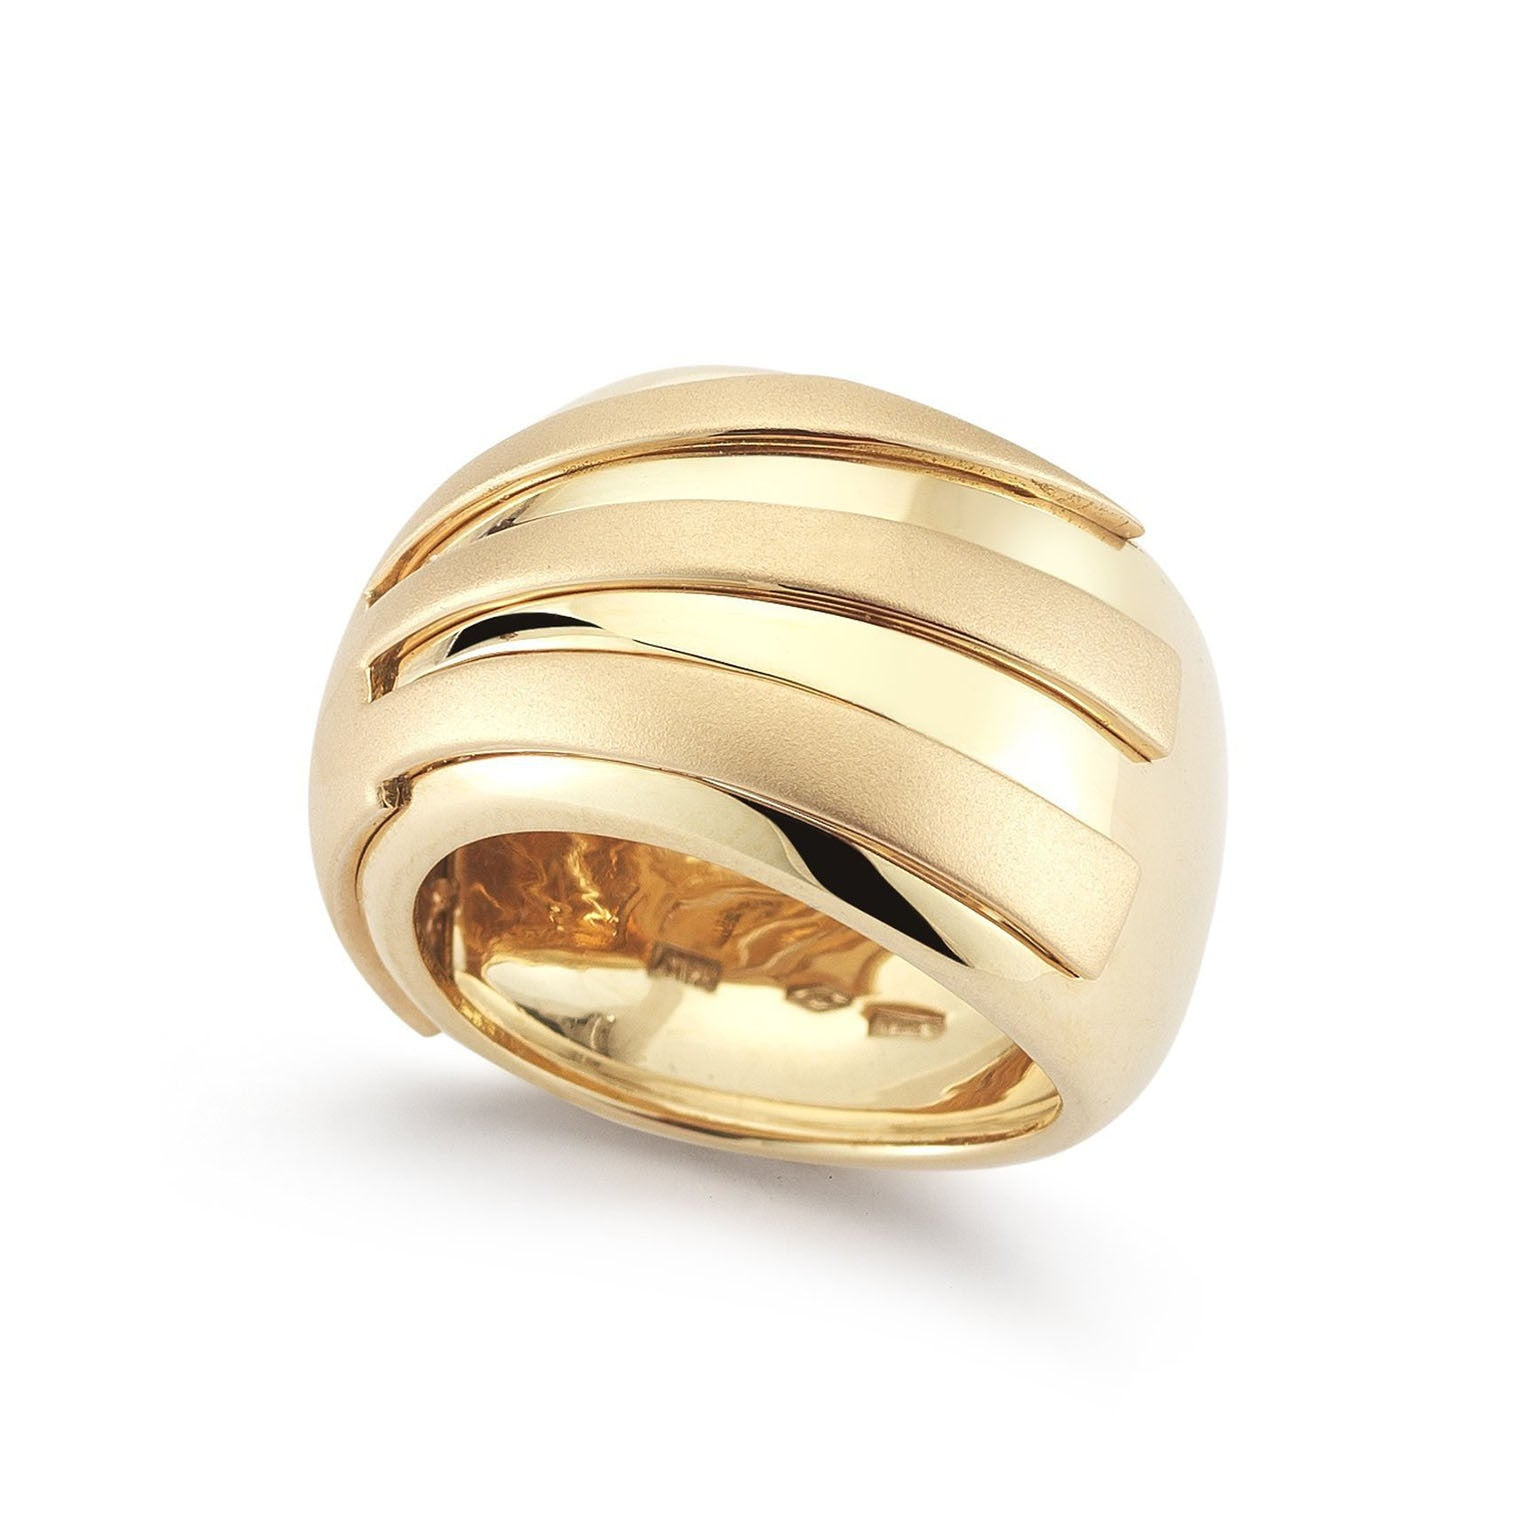 RAGGI RING IN YELLOW GOLD - Miseno -  Ring - Ora by D'Amore Jewelers